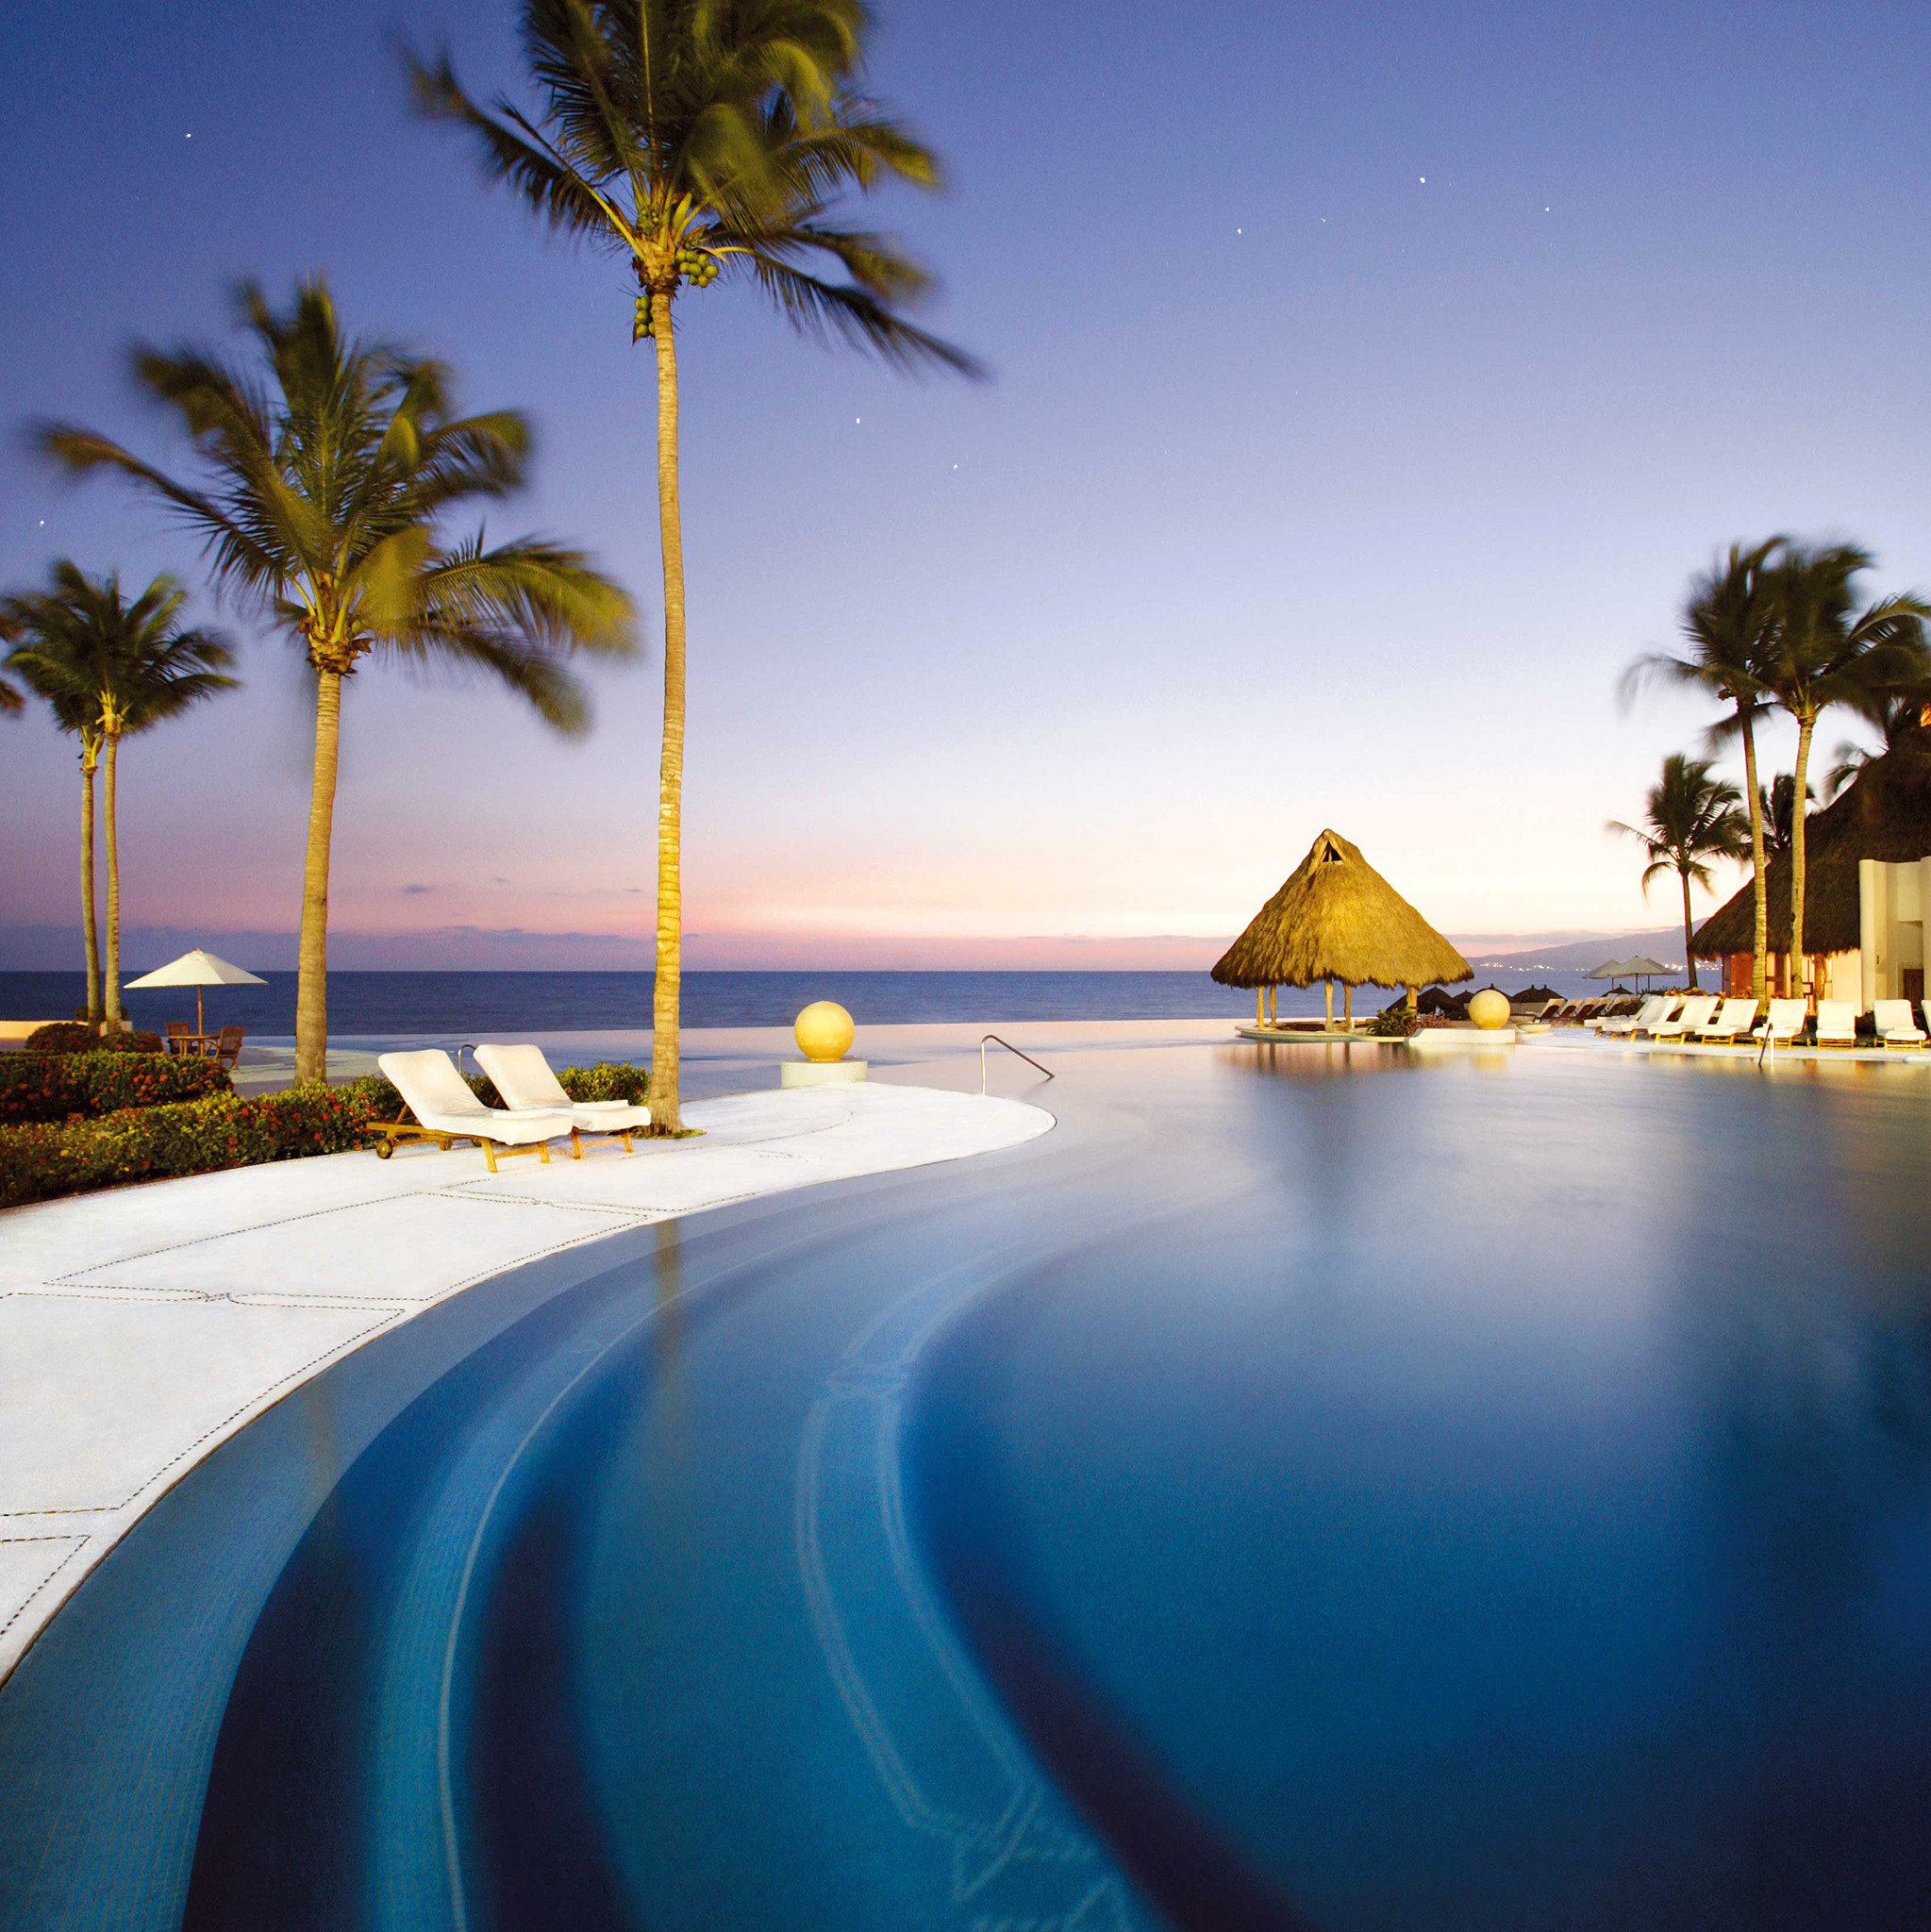 All-Inclusive Resorts Beach Beachfront Hotels Patio Pool Resort Romance Romantic Sunset Tropical sky tree palm Sea Ocean swimming pool arecales morning caribbean sunlight evening dusk tropics palm family shore